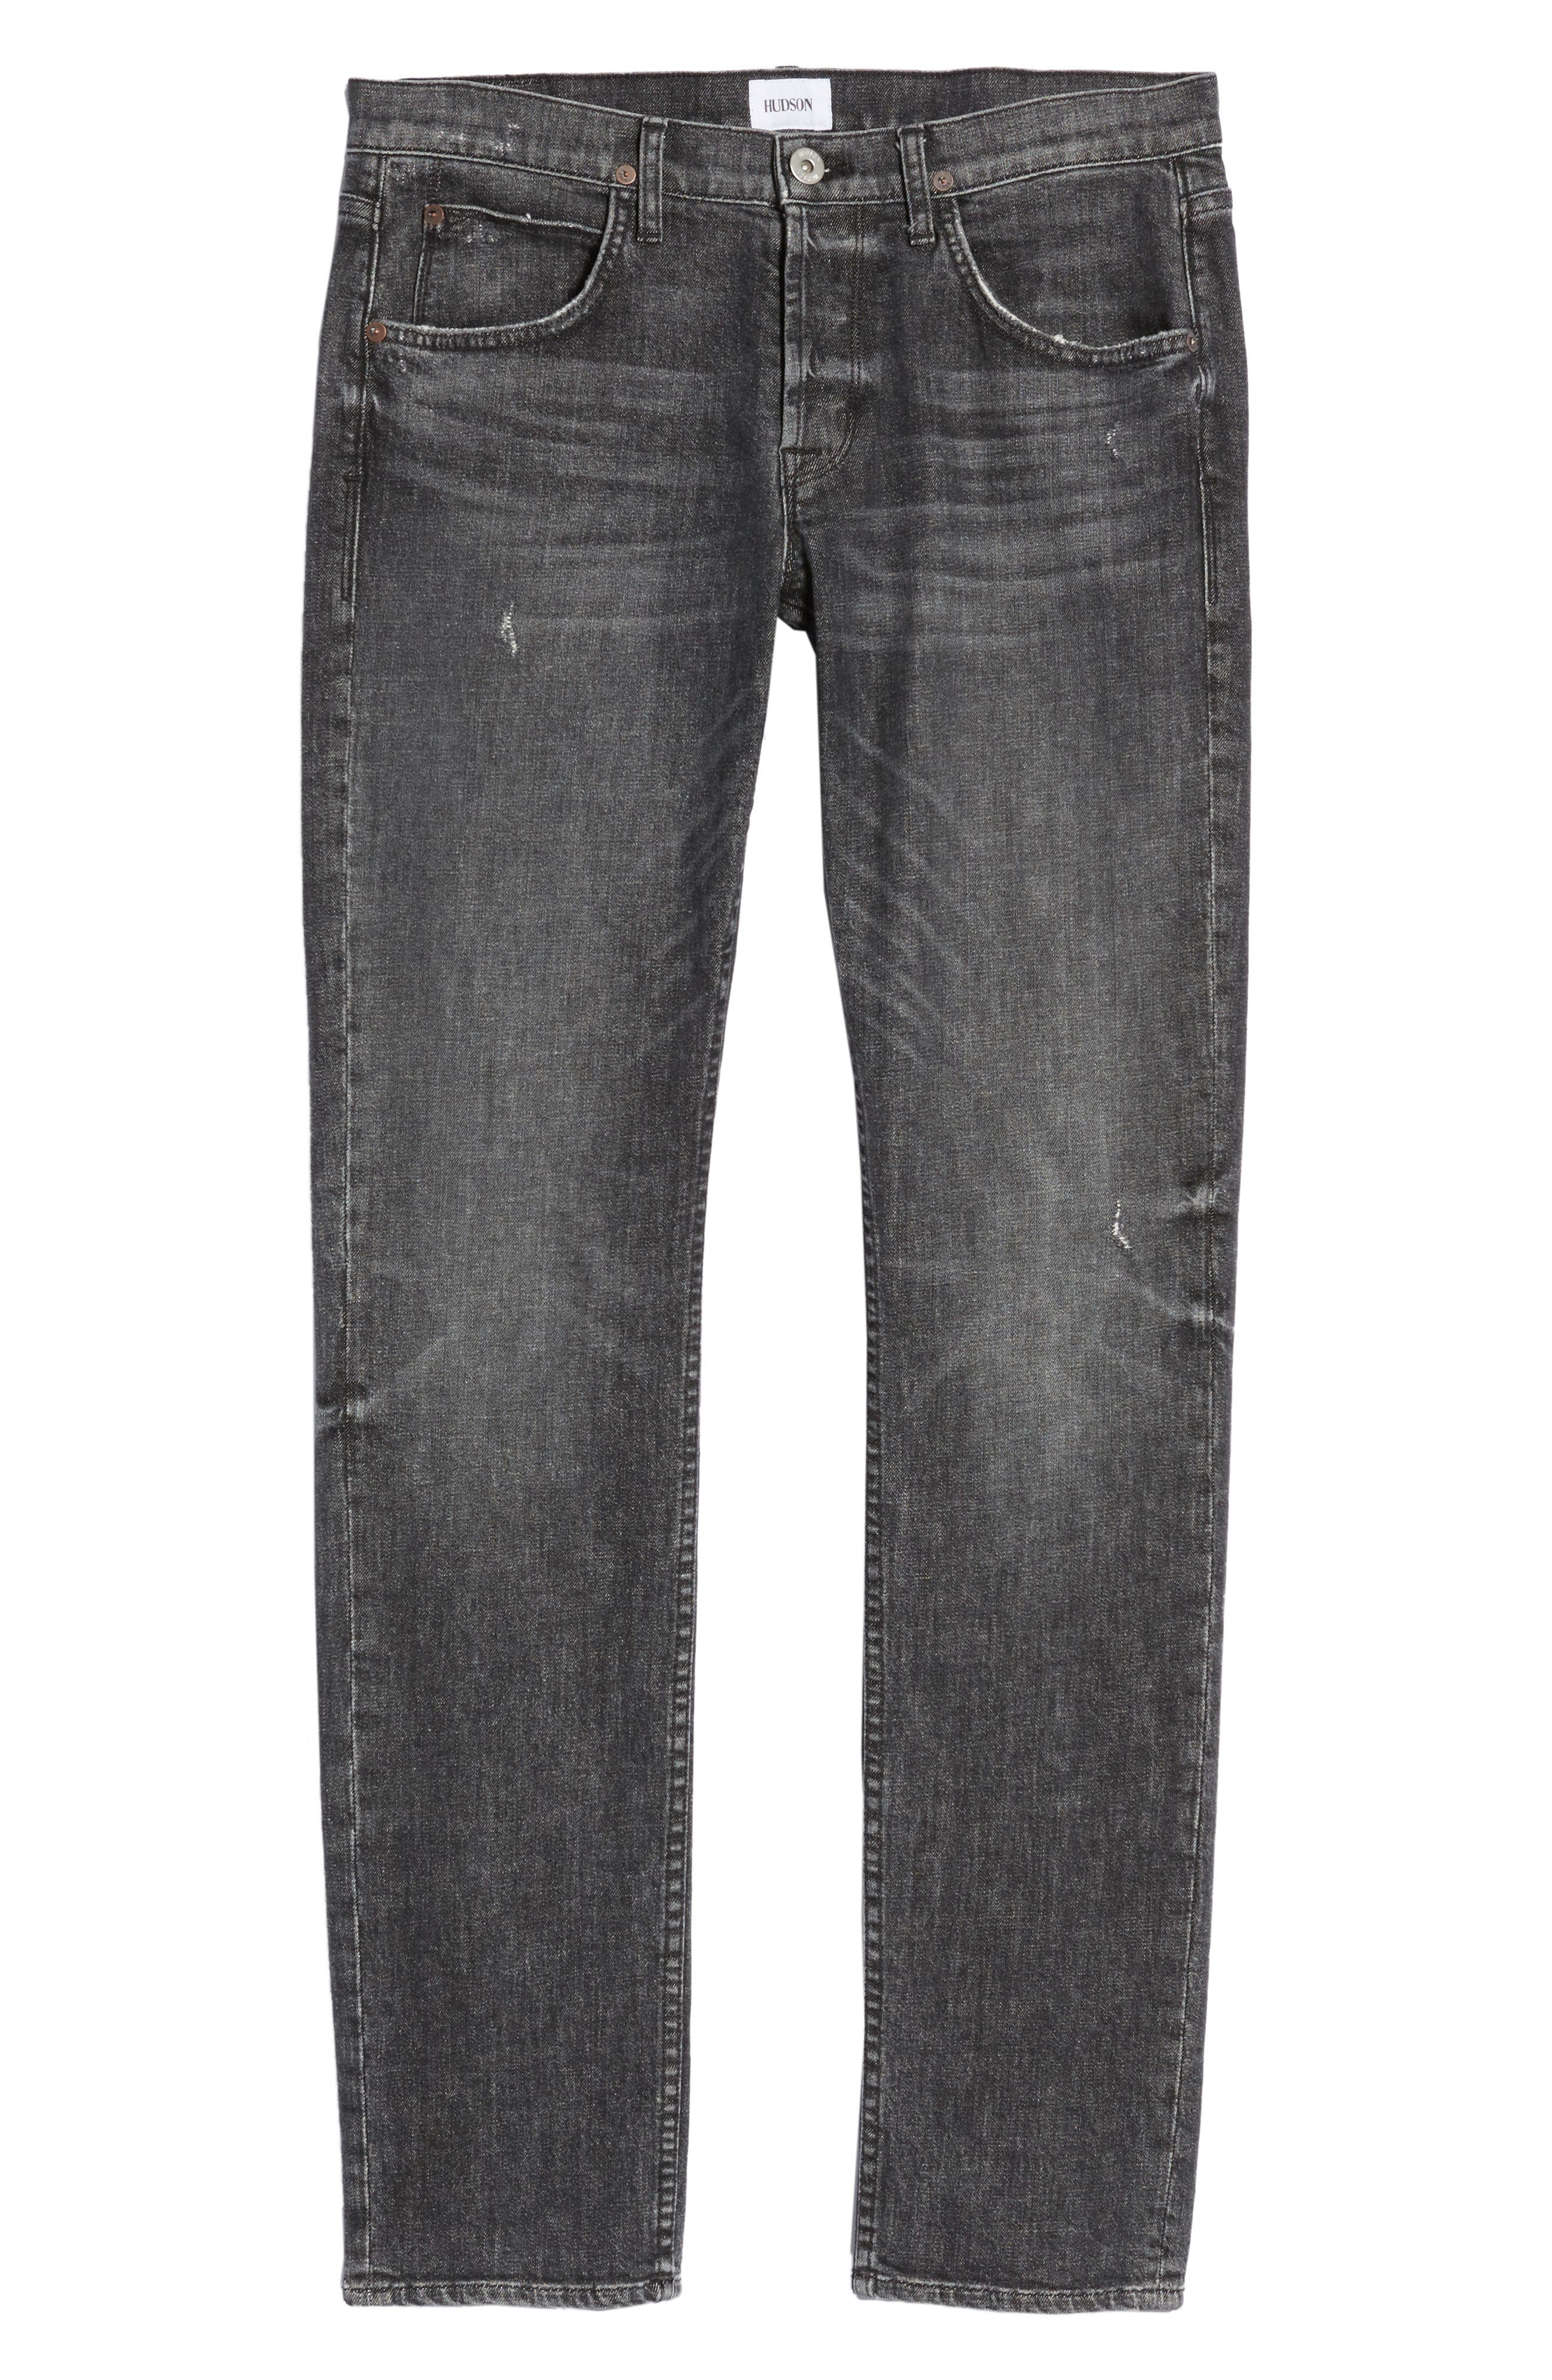 Blake Slim Fit Jeans,                             Alternate thumbnail 6, color,                             400